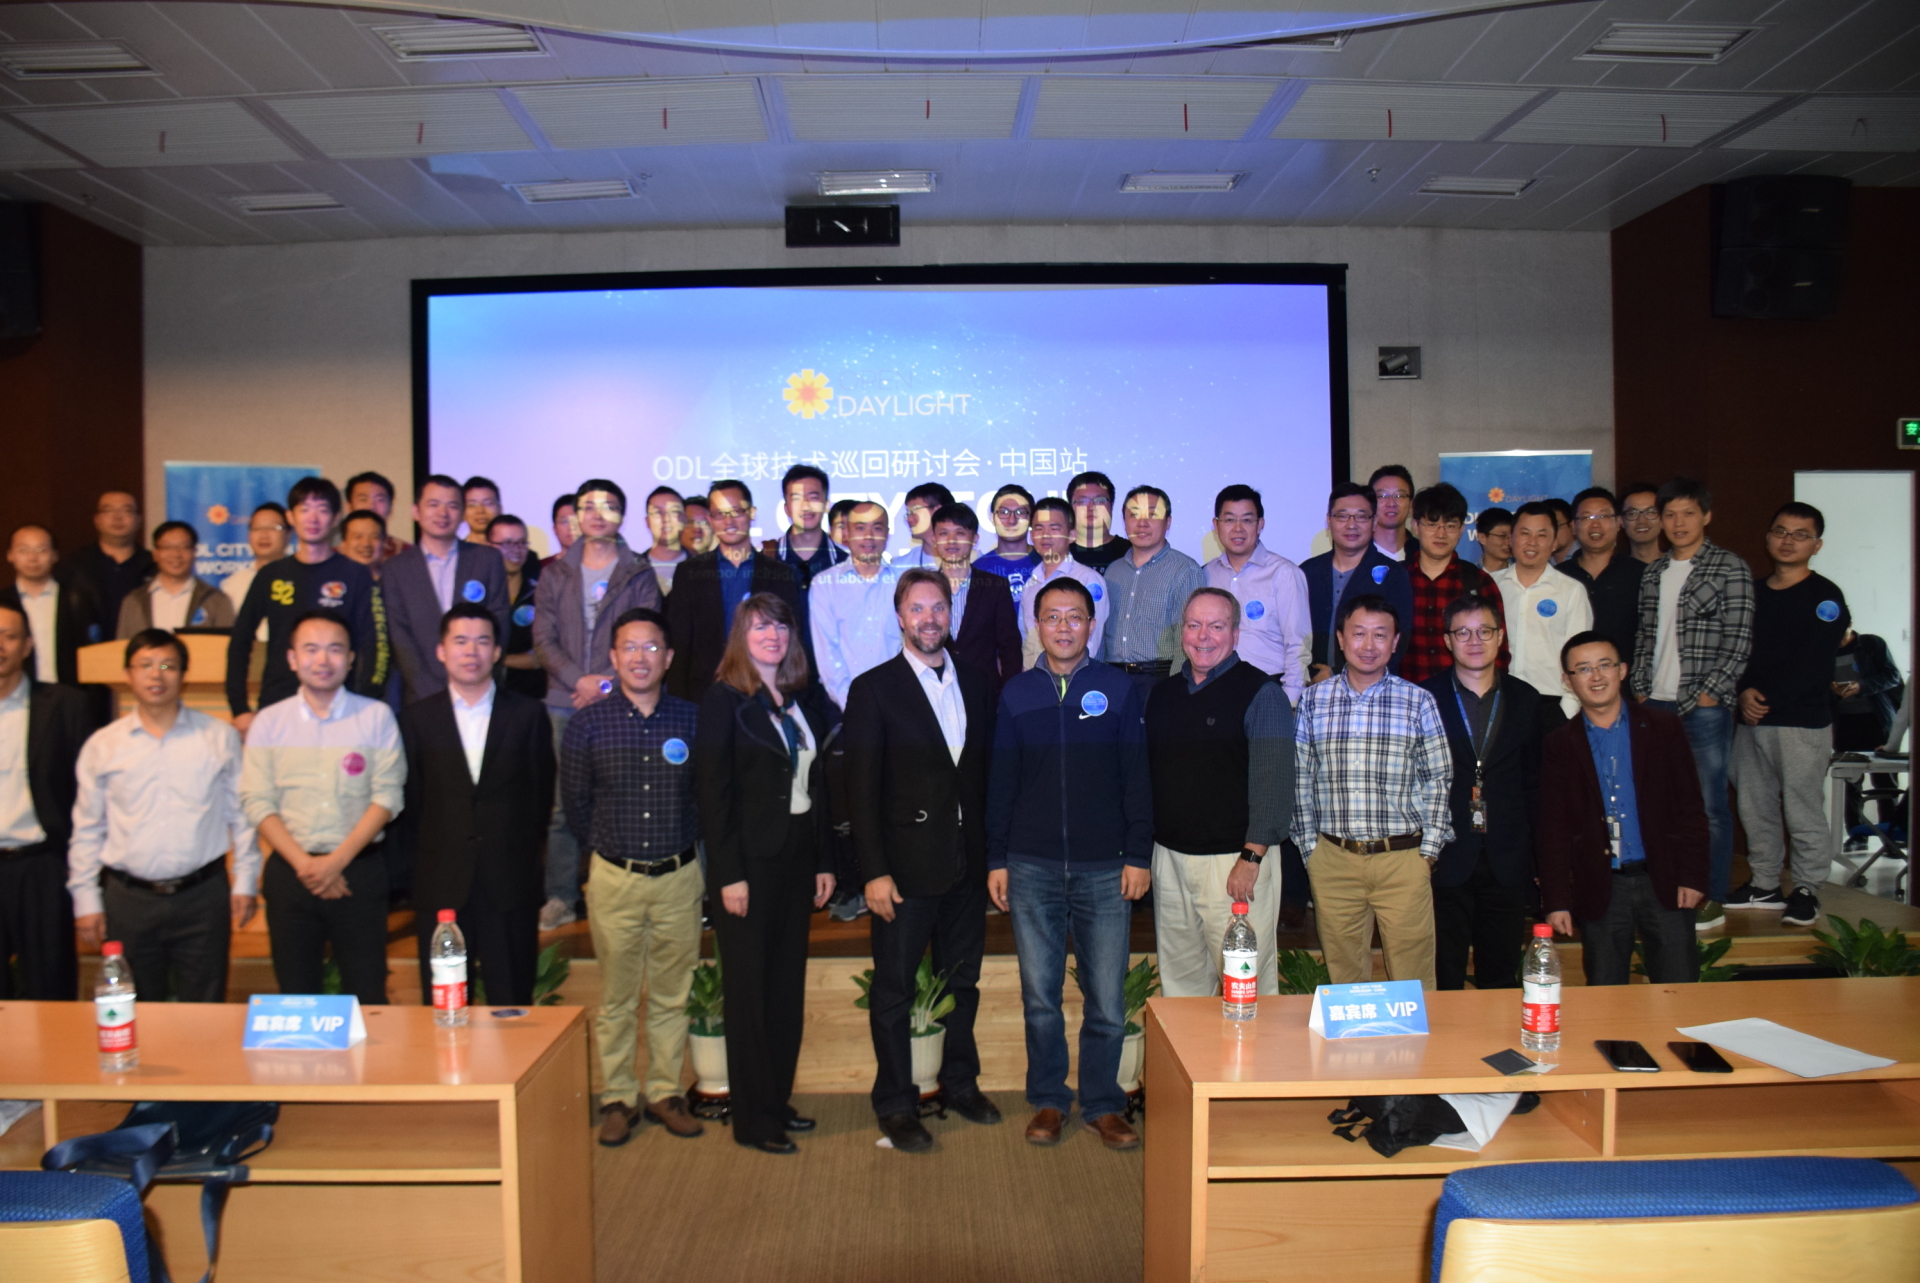 OpenDaylight City Tour Day 3 - Shenzhen